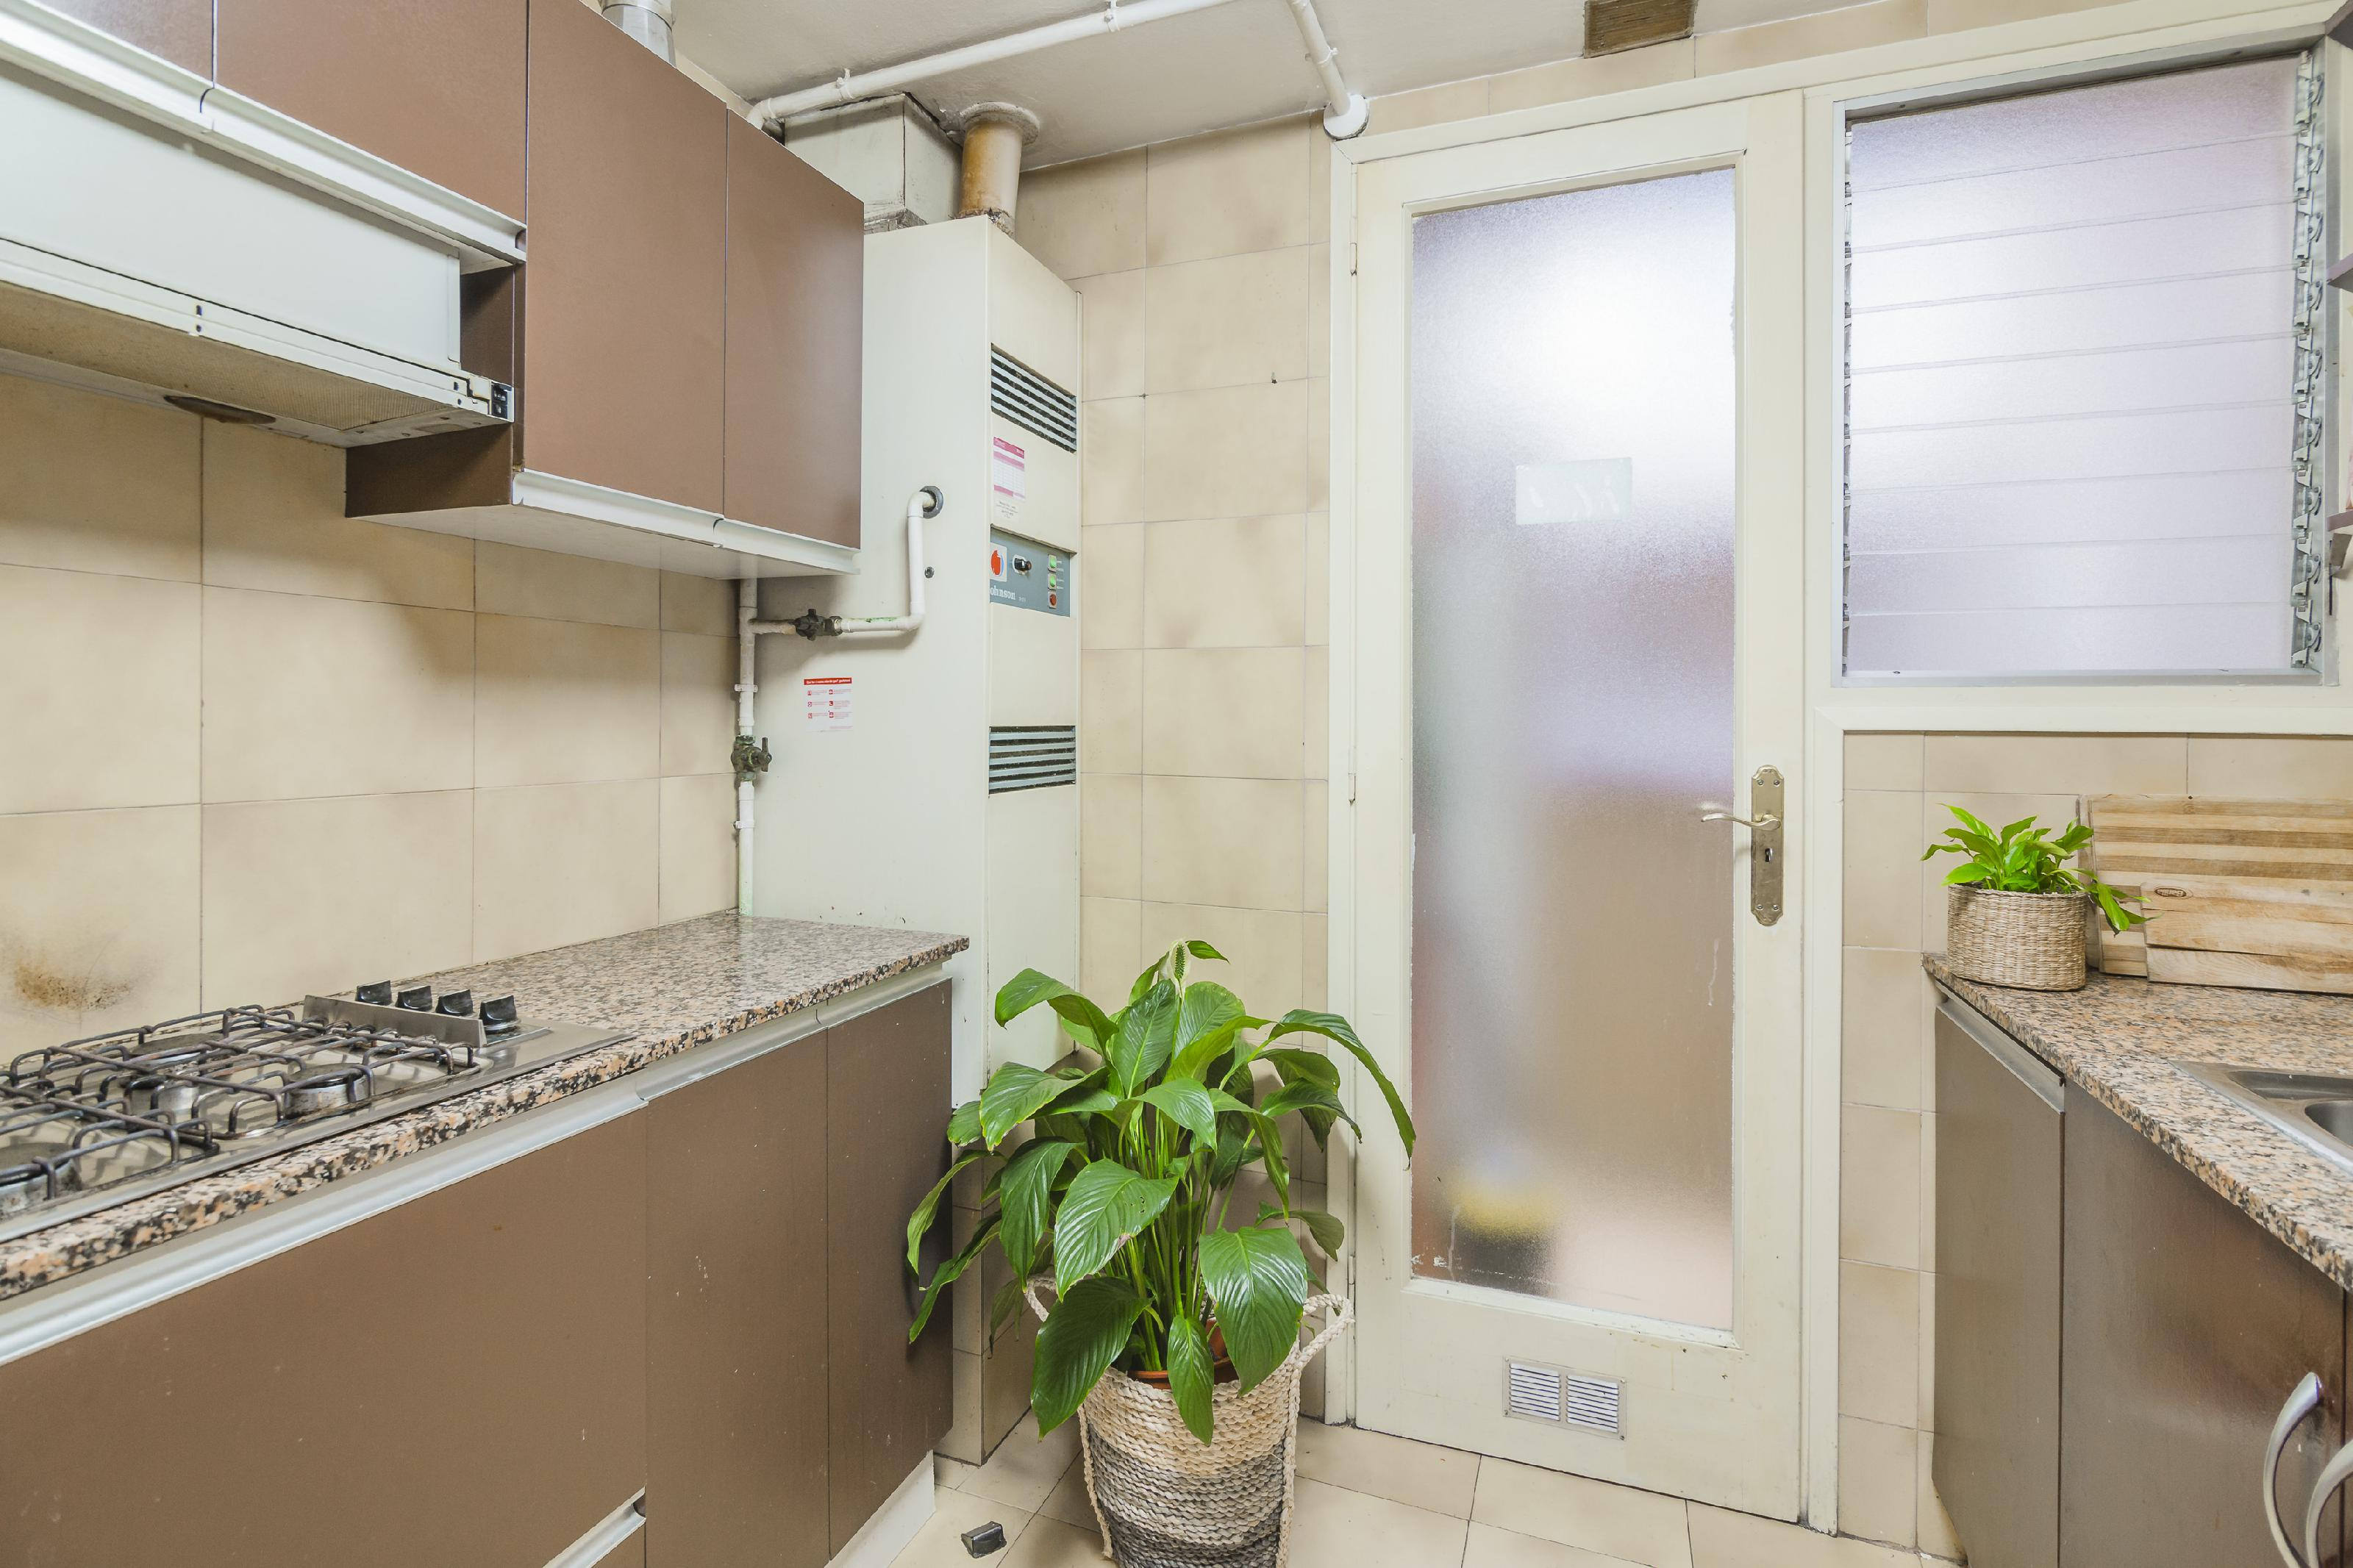 239426 Flat for sale in Les Corts, Les Corts 14